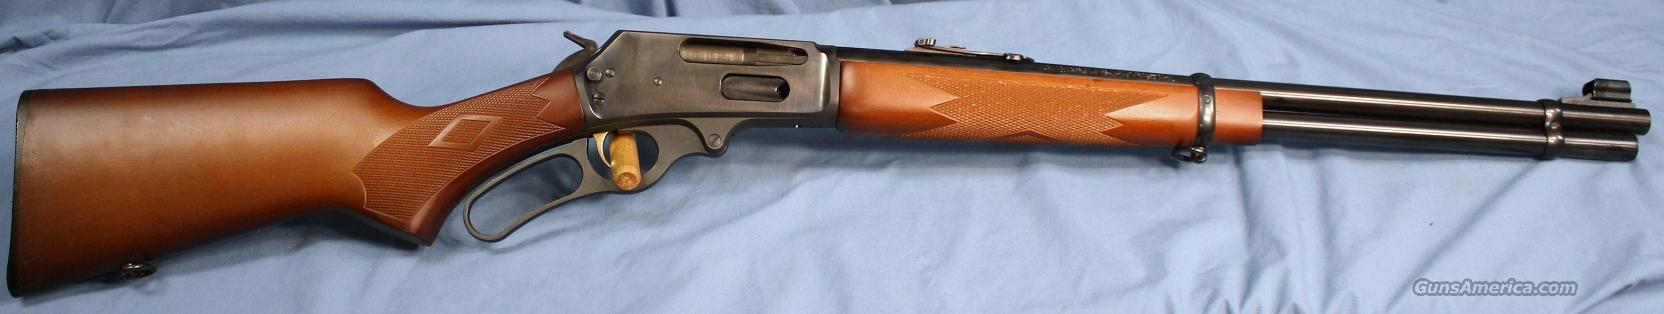 Marlin 336W Lever Action Rifle .30-30 Win  Guns > Rifles > Marlin Rifles > Modern > Lever Action